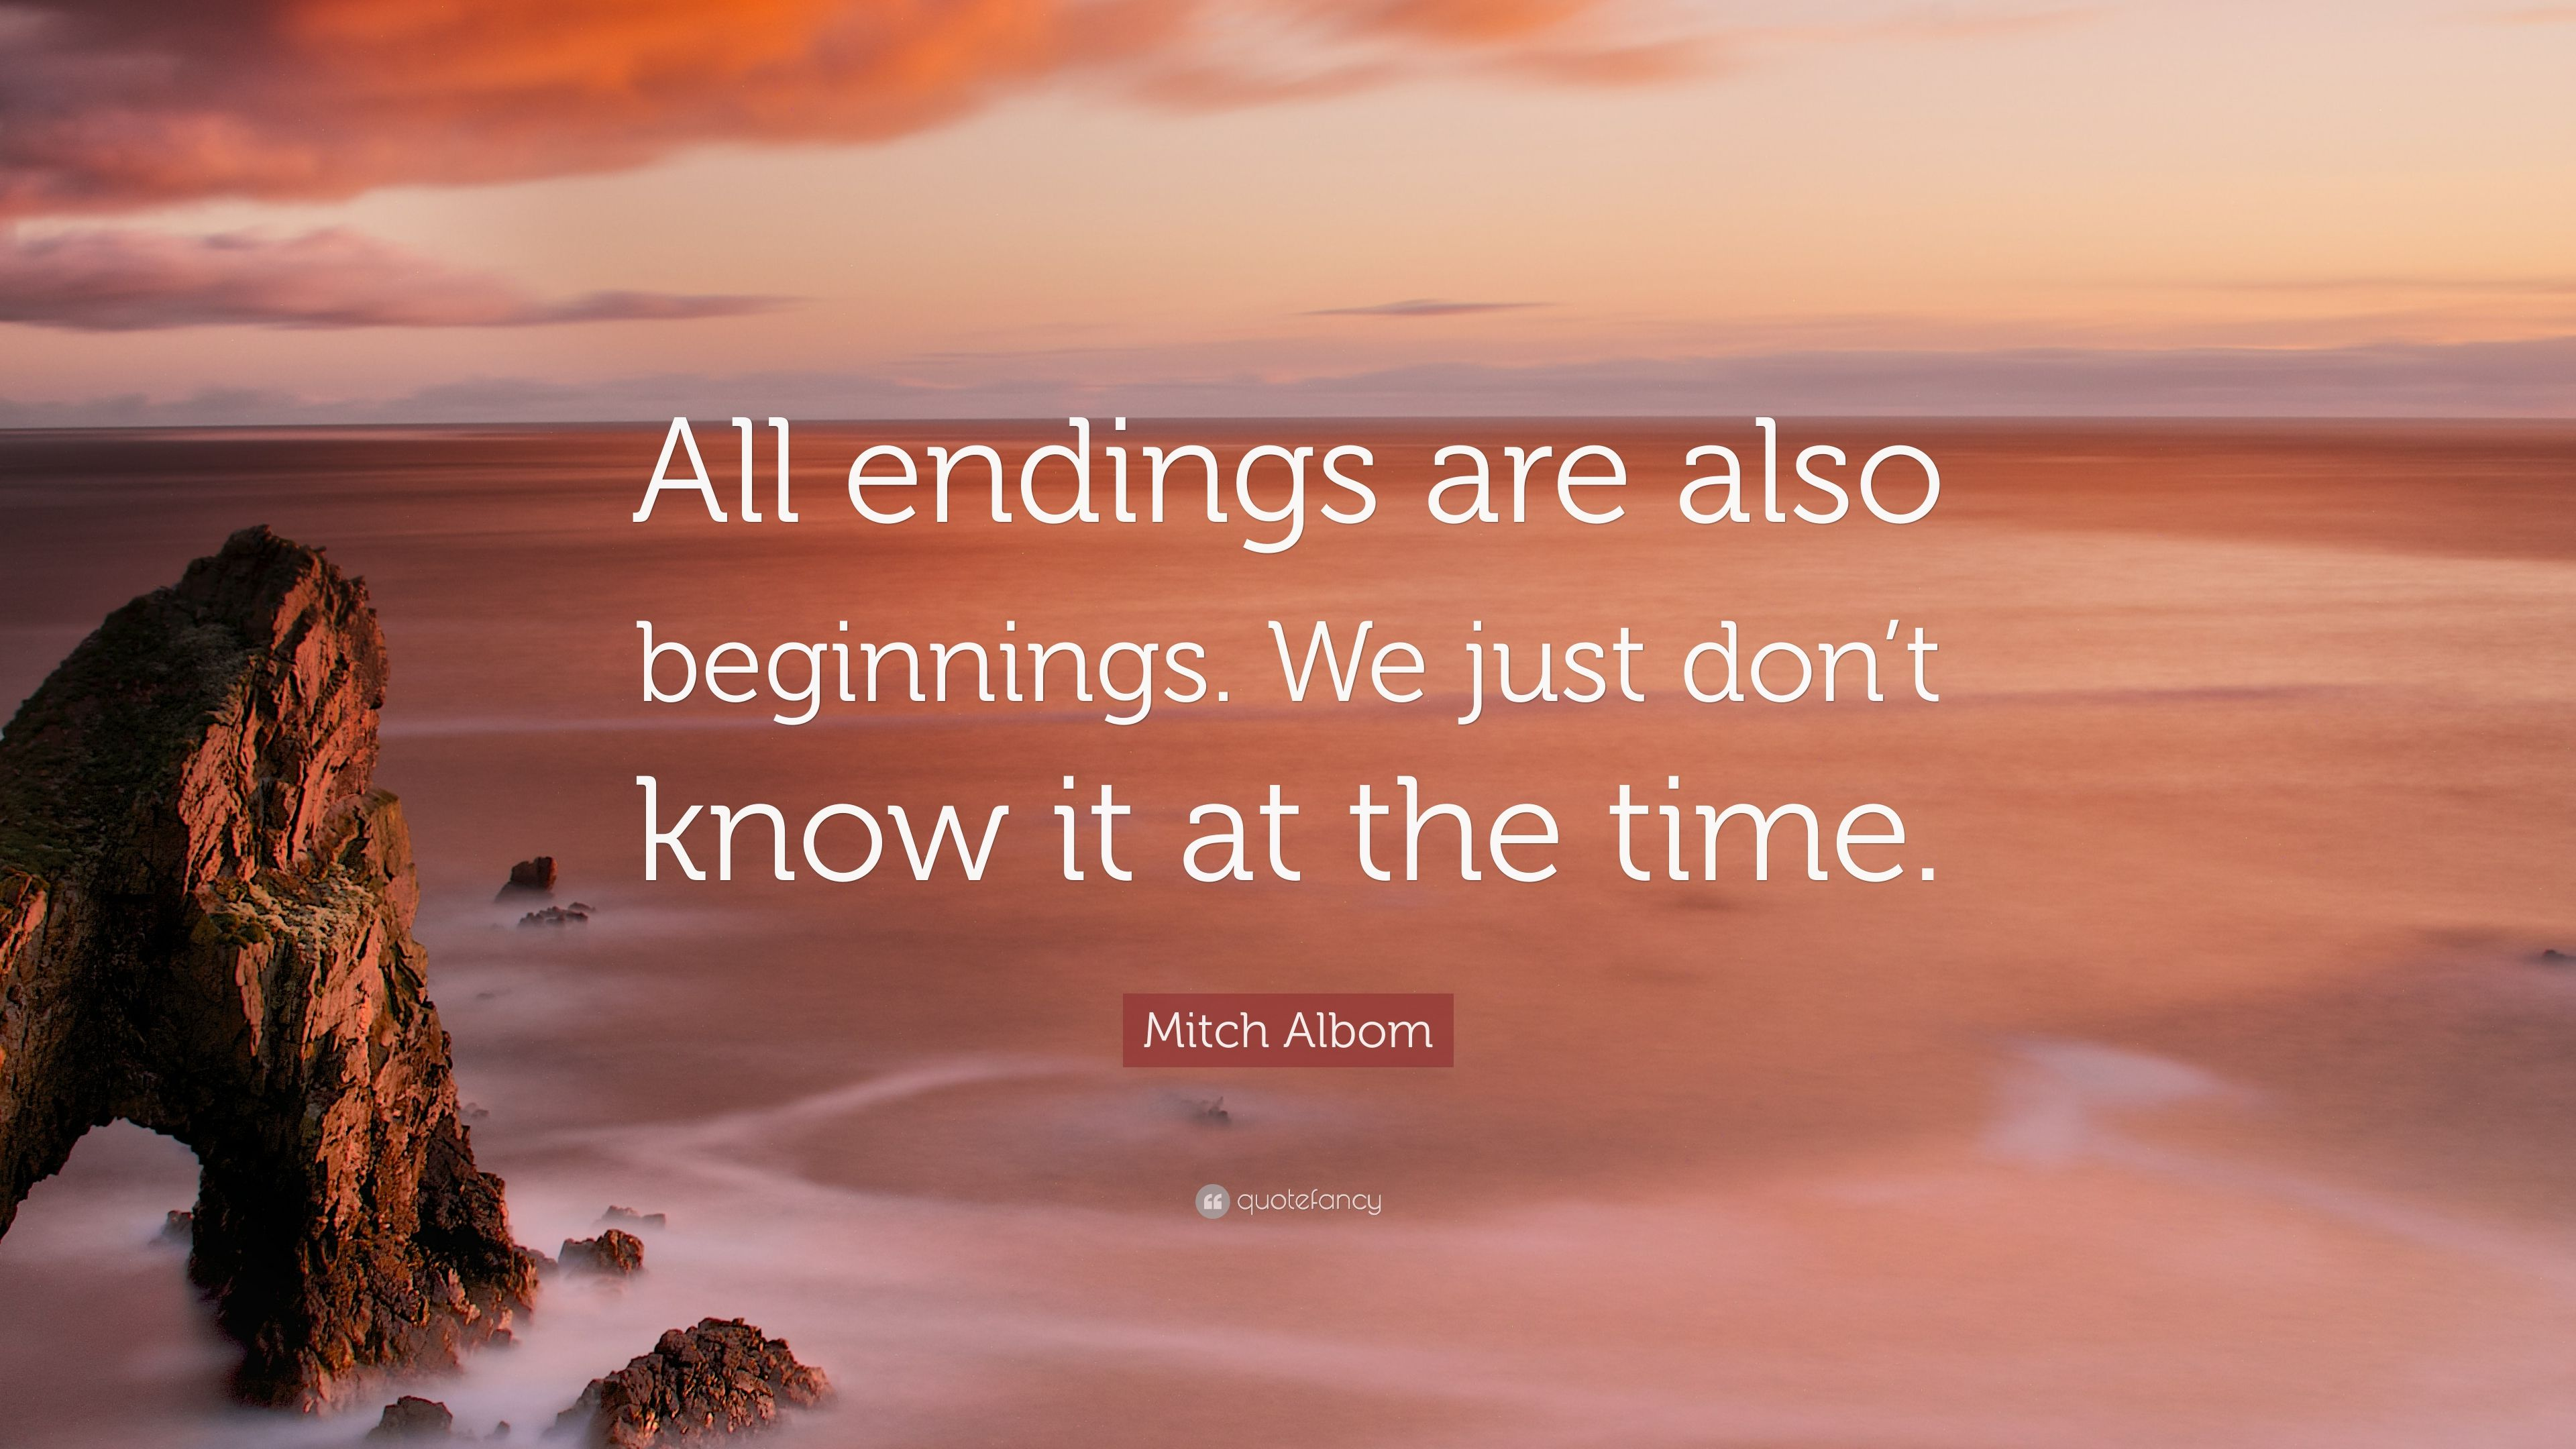 Amazing Mitch Albom Quote: U201cAll Endings Are Also Beginnings. We Just Donu0027t